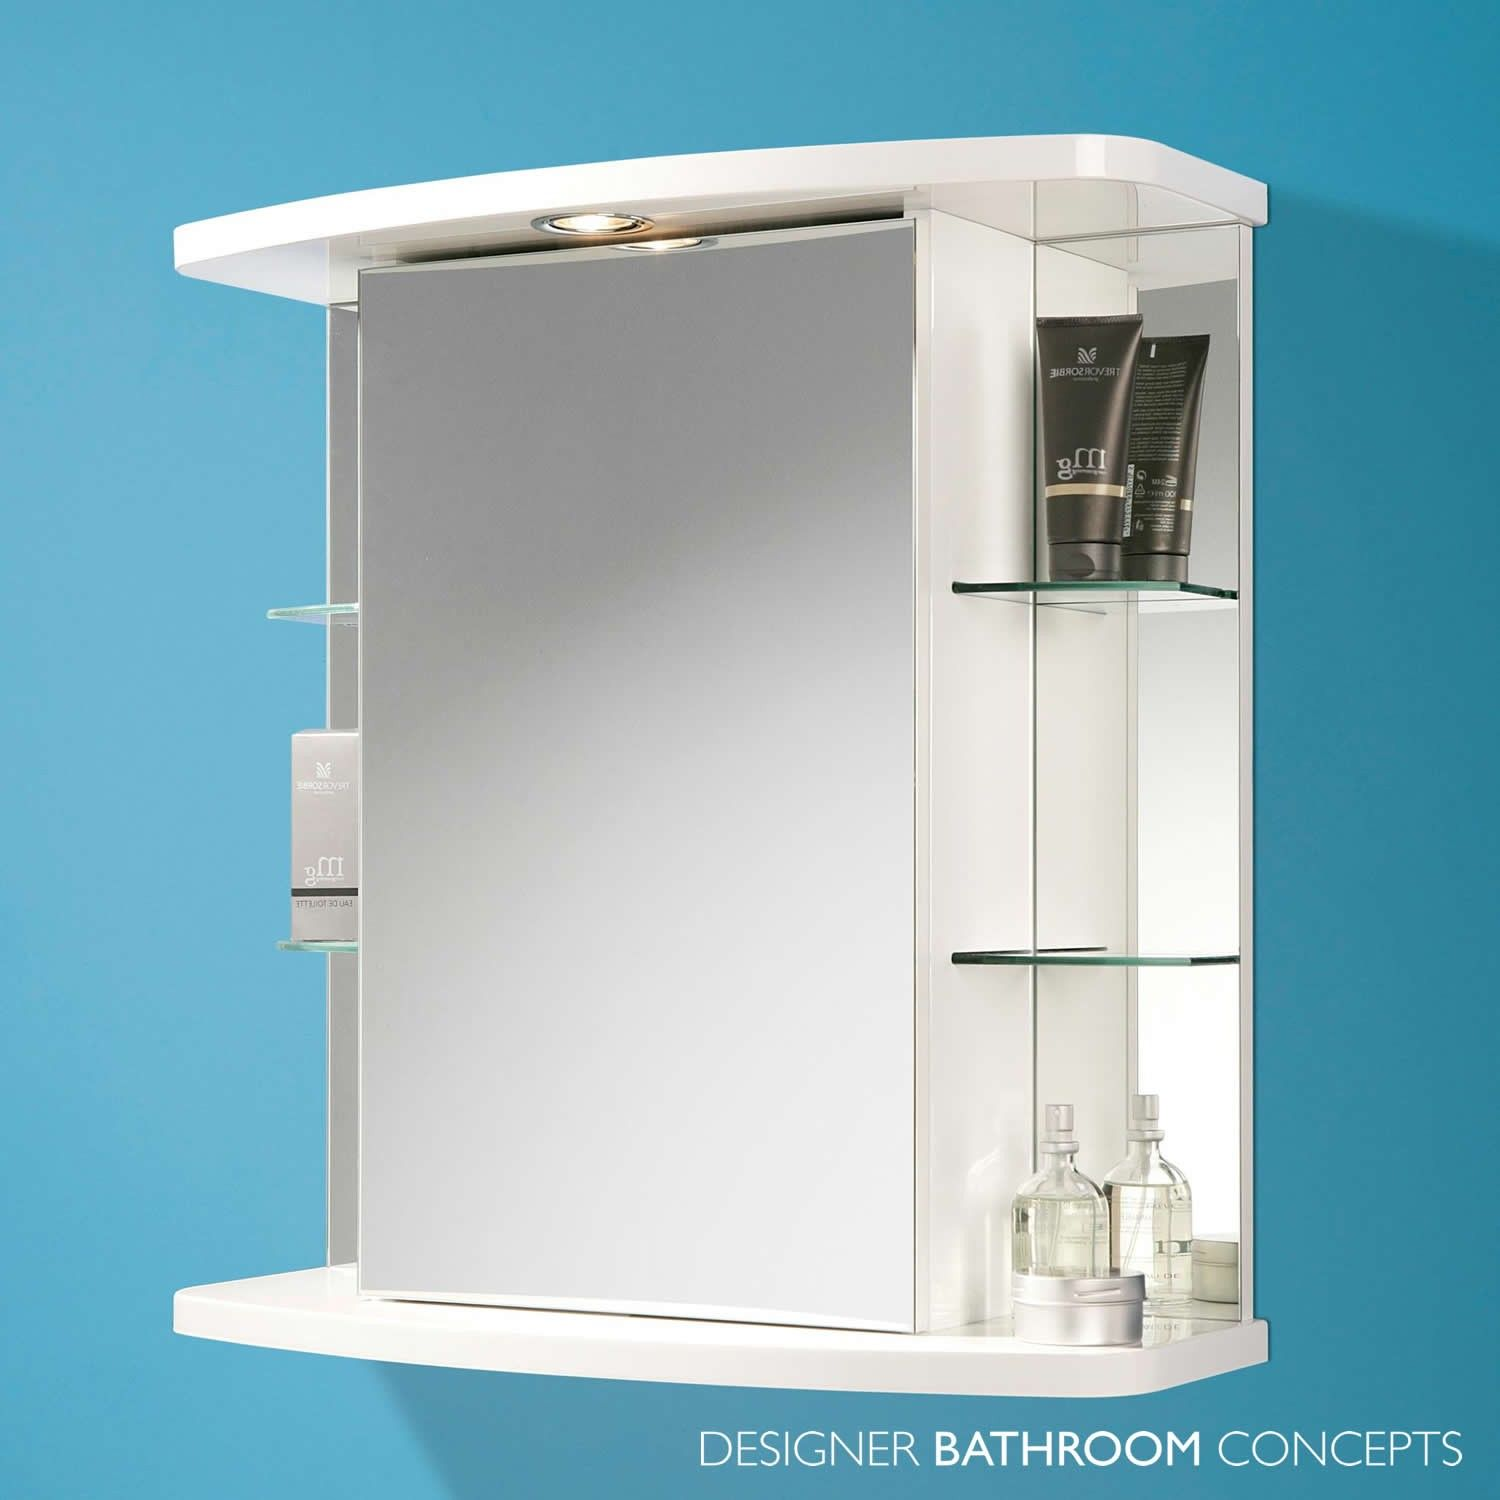 Featuring Reflective Side Shelving You Will Never Run Out Of Room New Designer Bathroom Store Decorating Inspiration